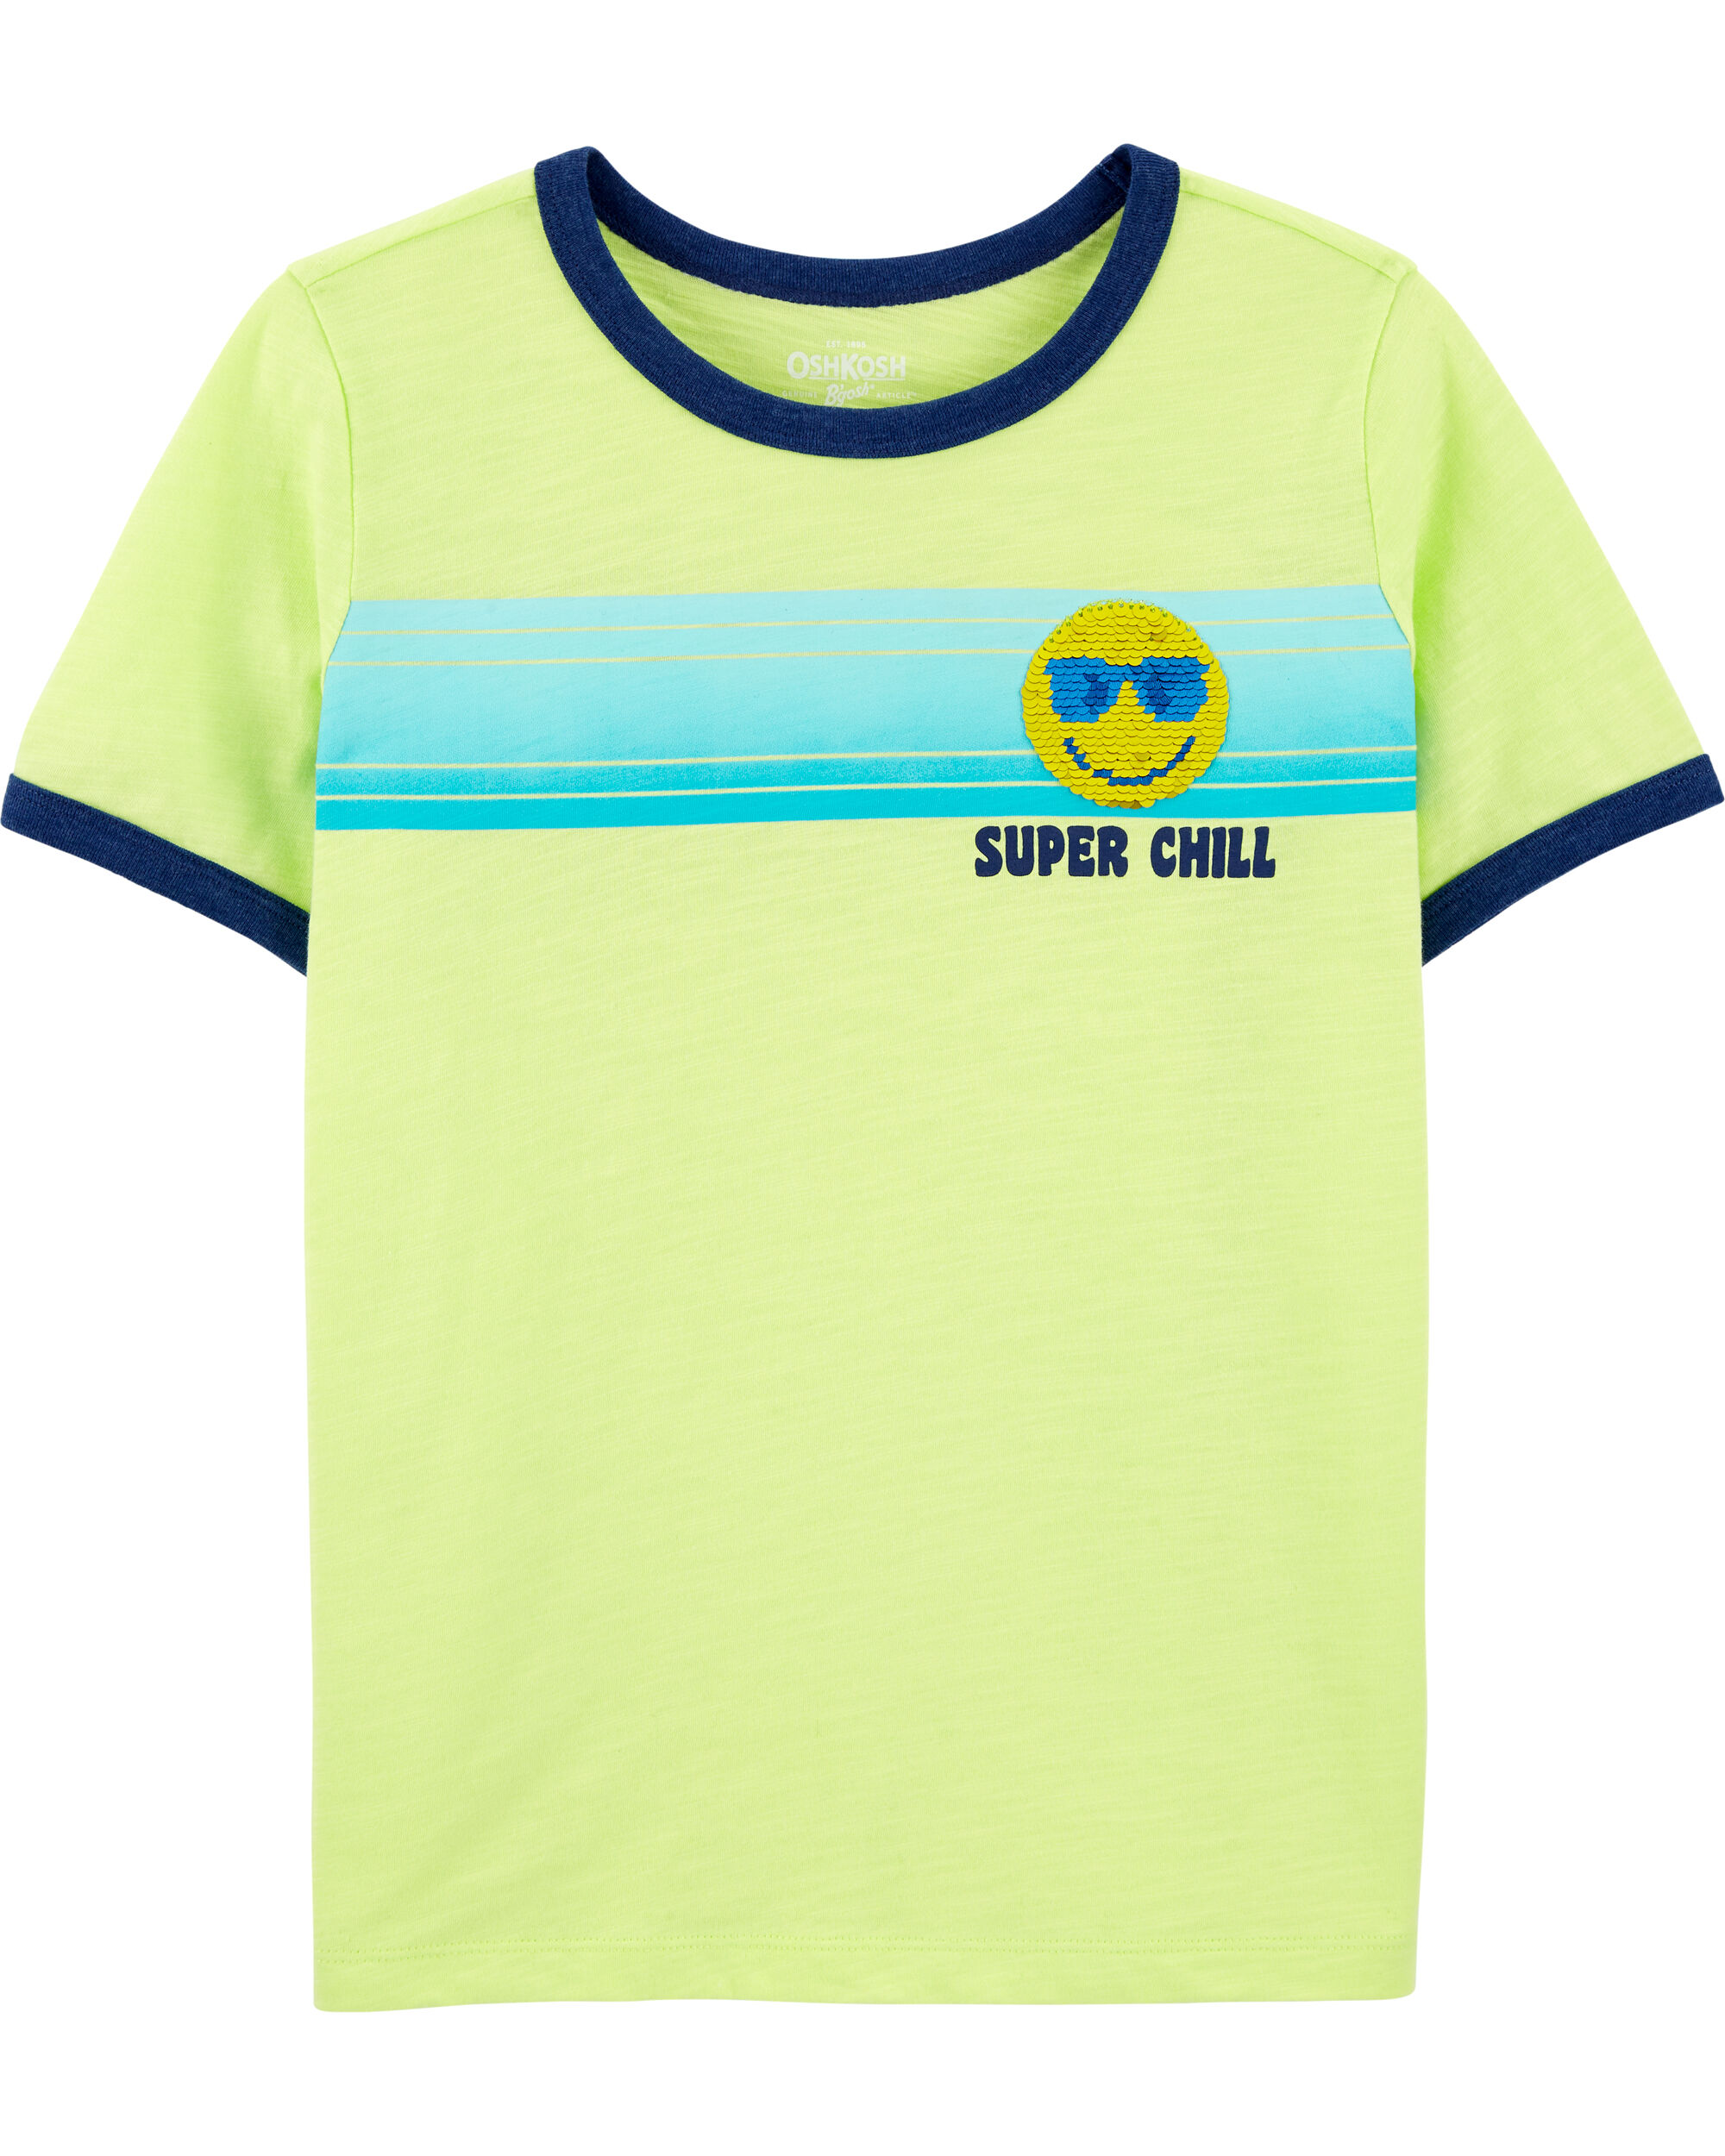 *CLEARANCE*Super Chill Flip & Reveal Sequin Tee